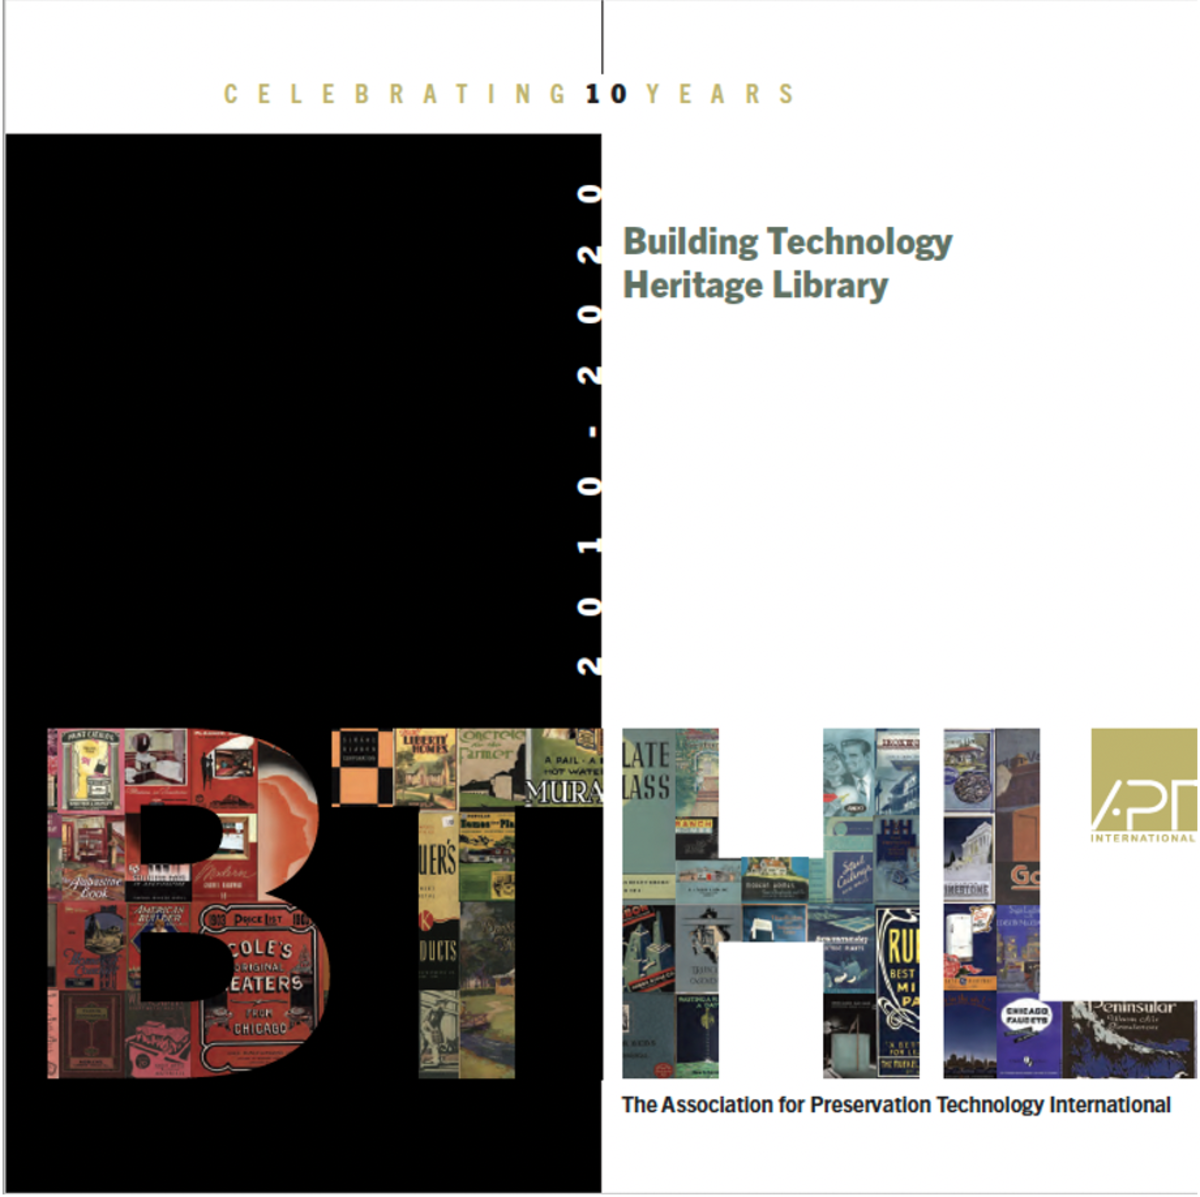 Cover of the Building Technology Heritage Library 10th Anniversary Publication.